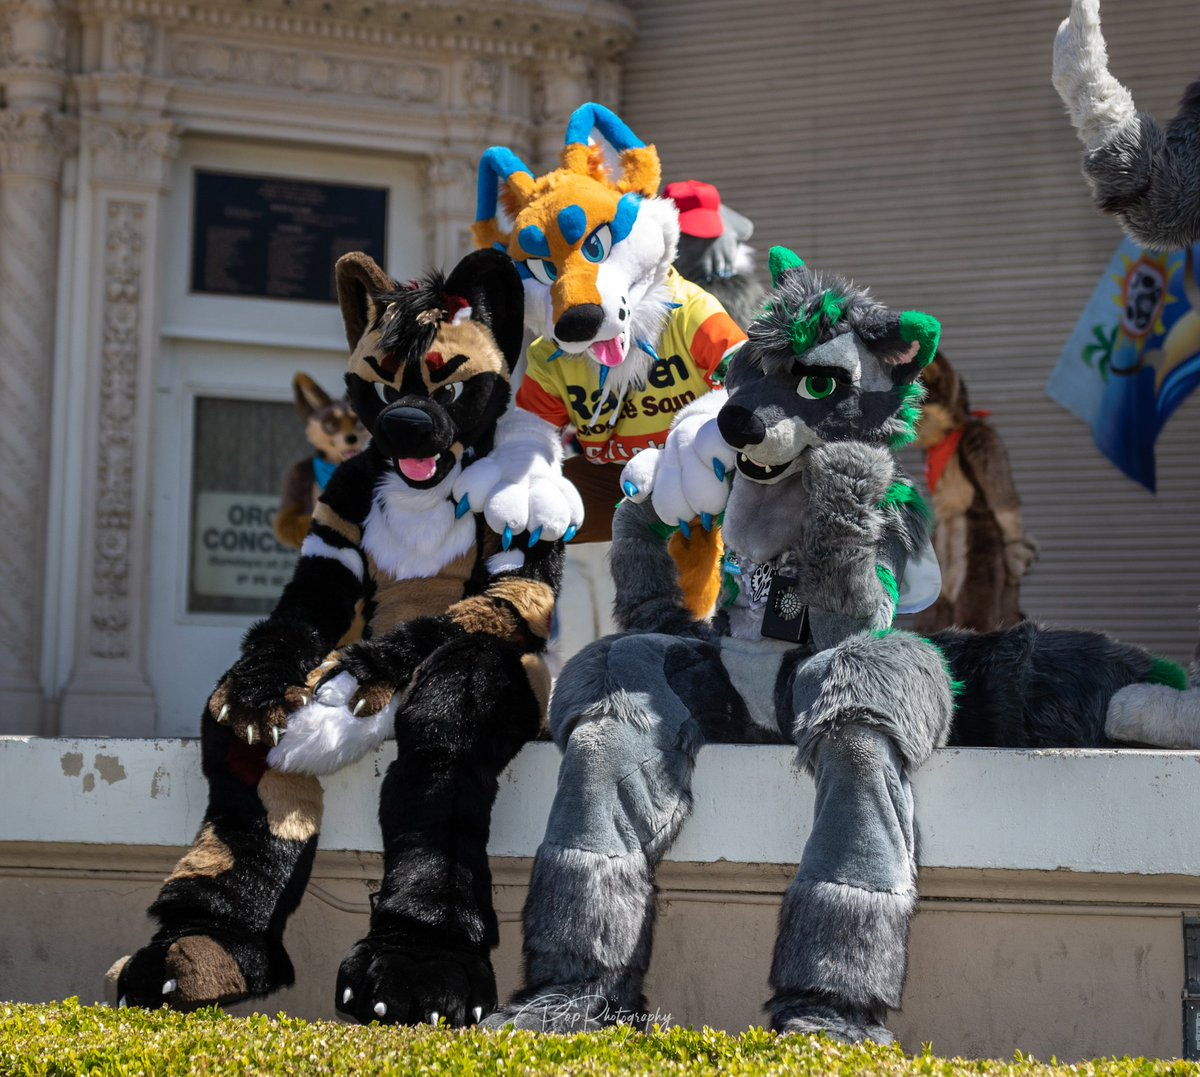 Are we all we bunch of good boys? I think so   :@BooblesFennec  #Furry #FurryFandom #Fursuit #Fursuiter #Fursuiting<br>http://pic.twitter.com/M7GNZLqc20